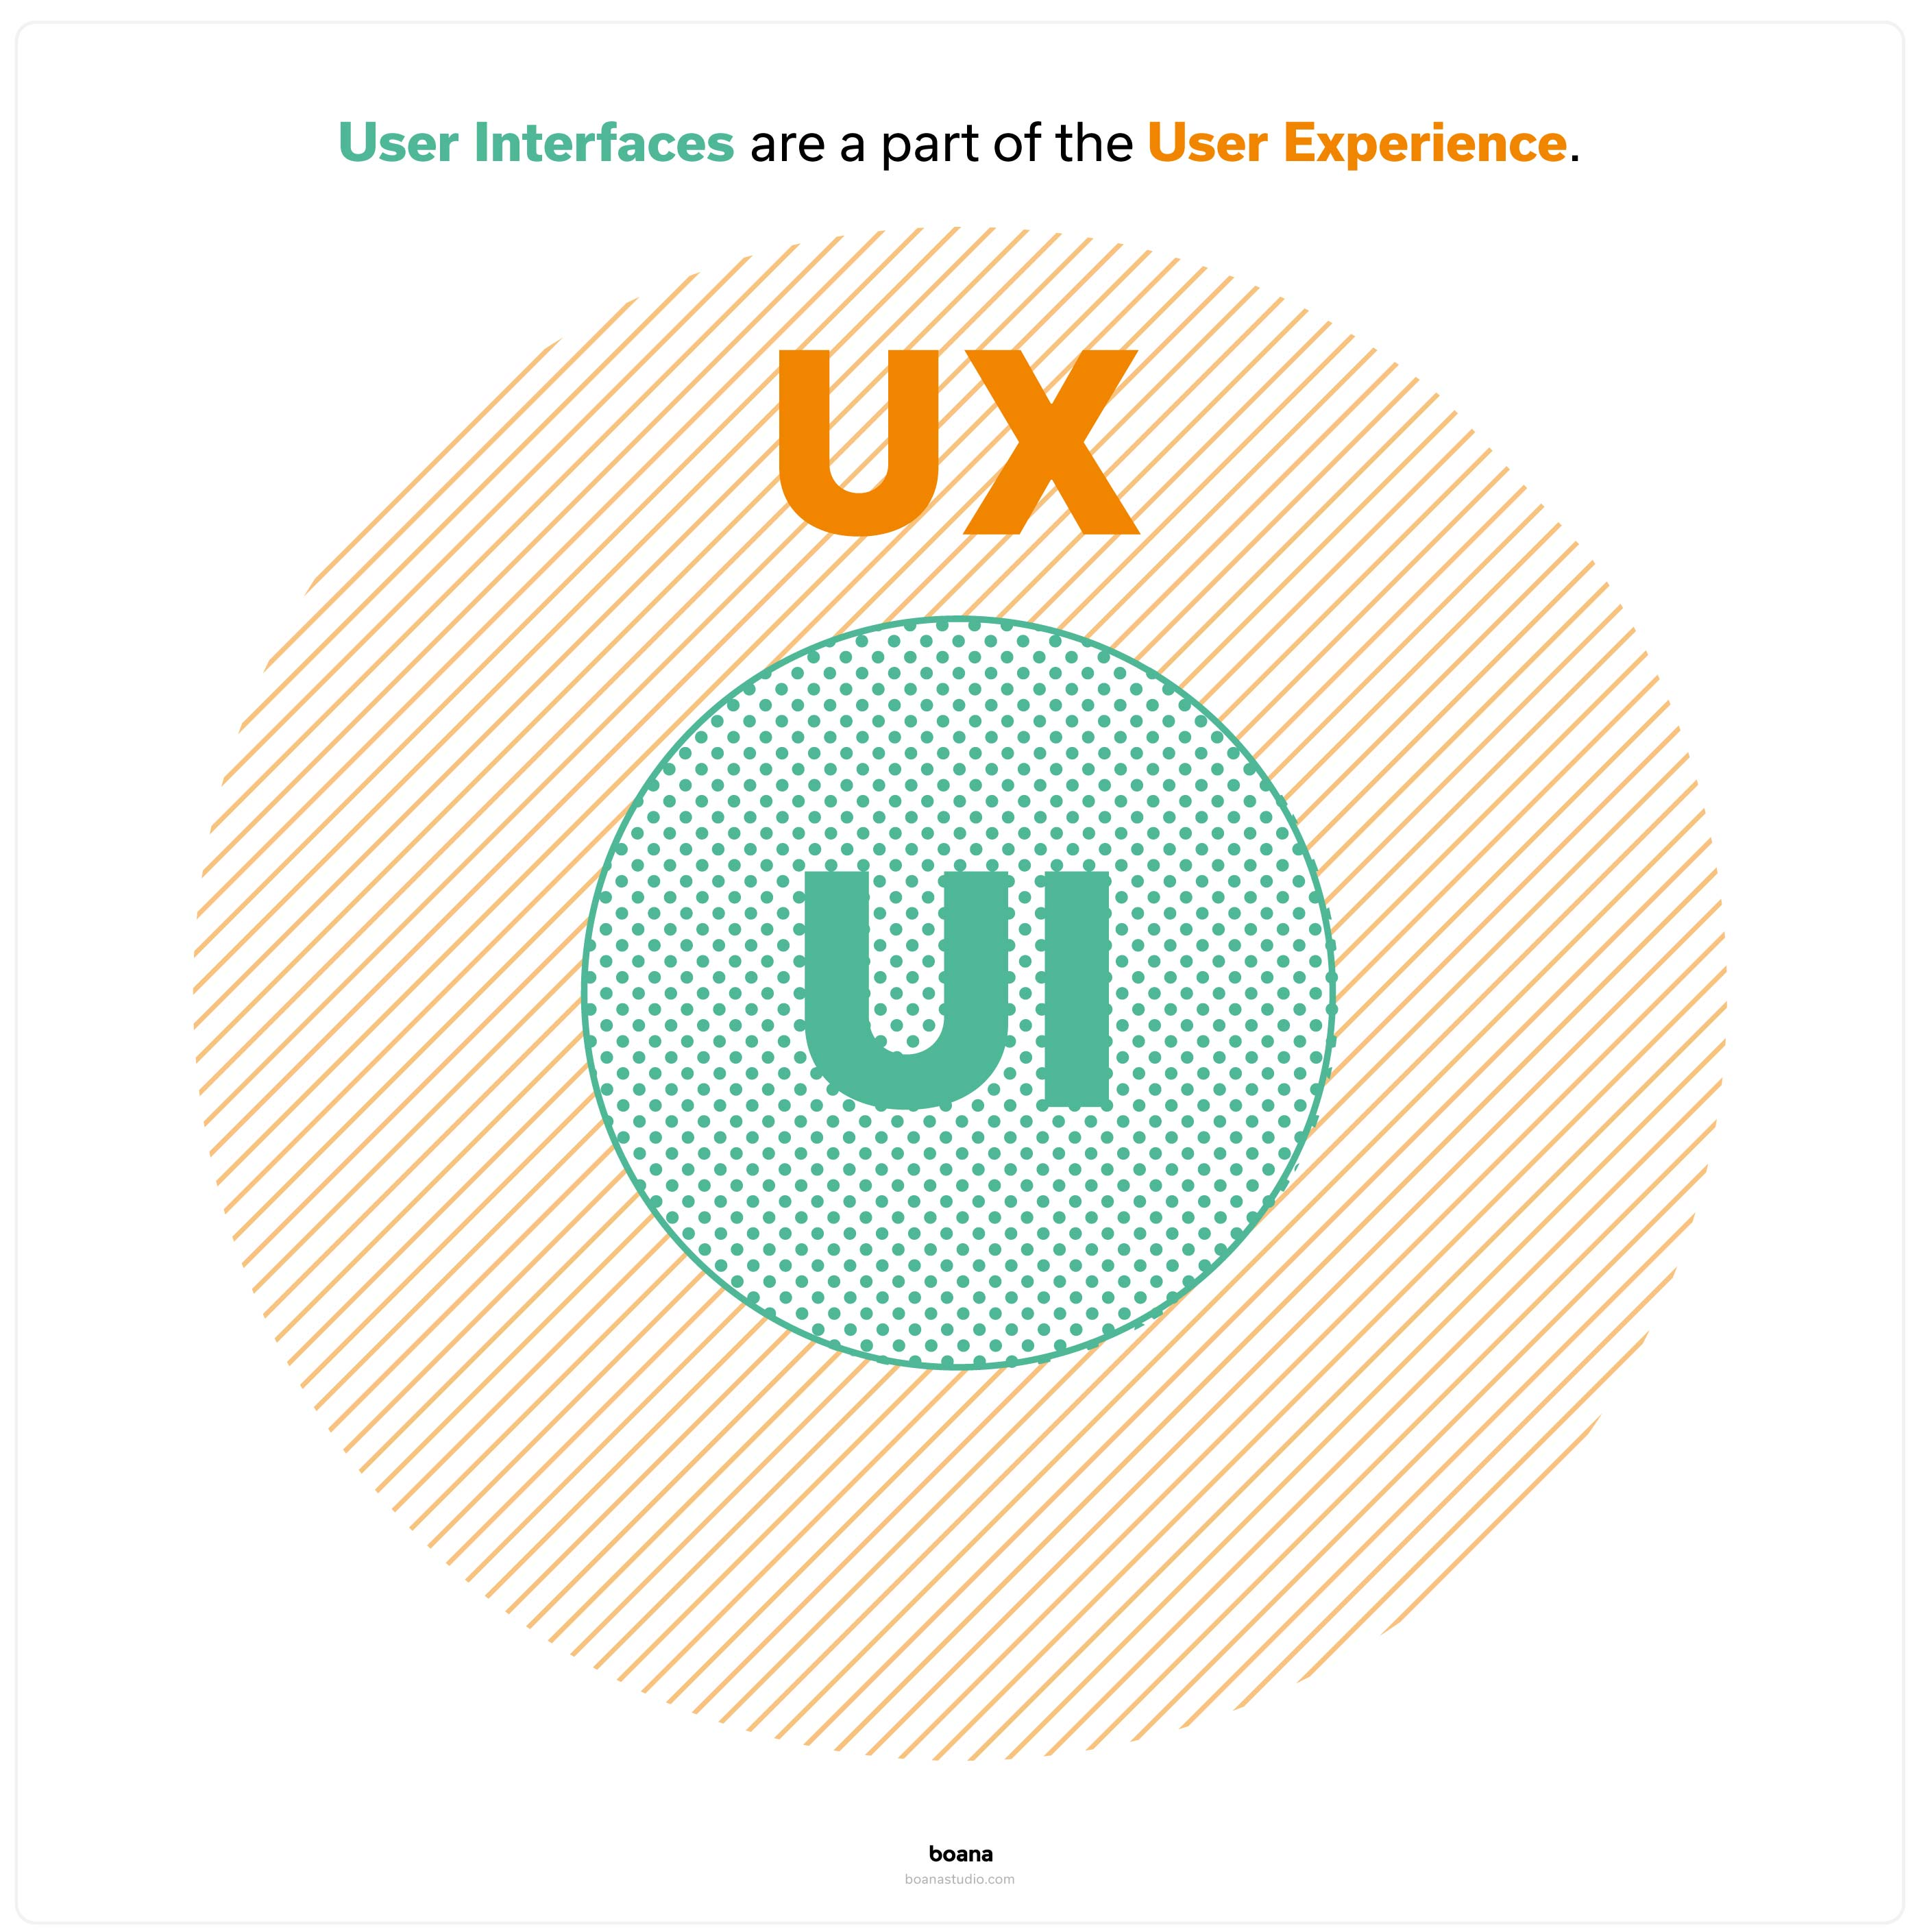 User Interface Design (UI) is part of the User Experience(UX)